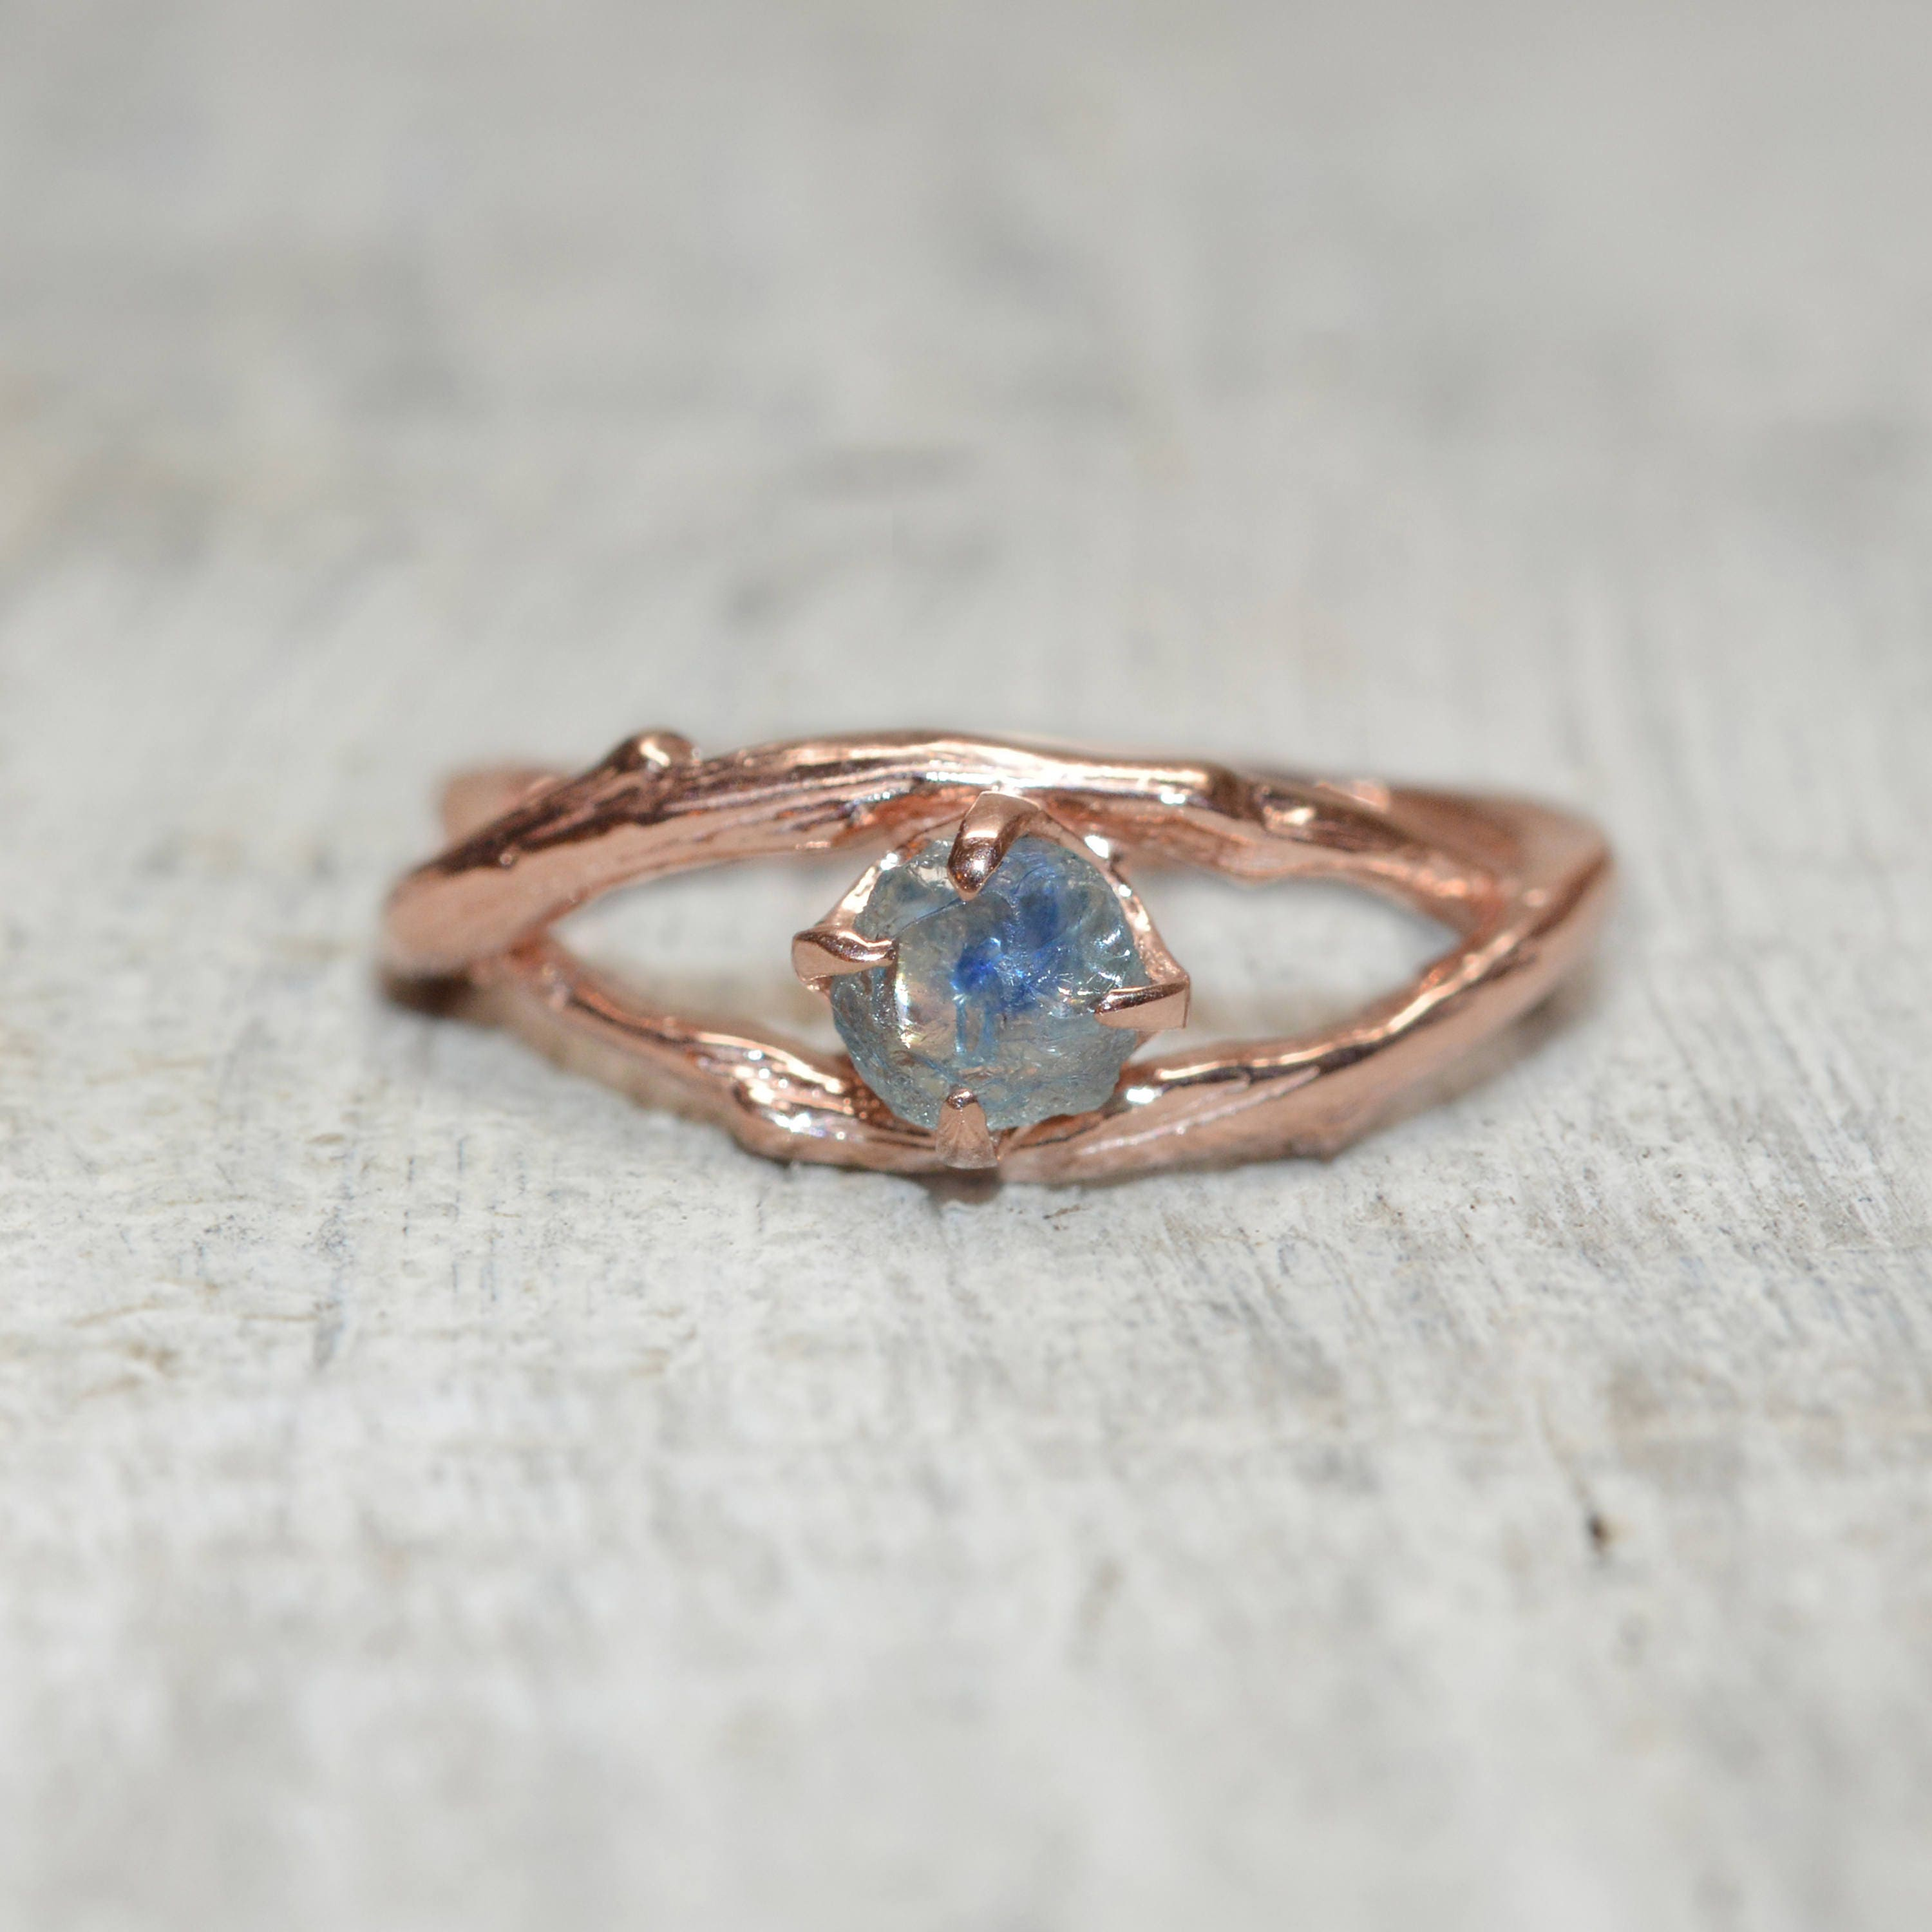 Montana Sapphire Engagement Ring  Unique Nature Inspired Engagement Ring  In Yellow Gold, White Gold